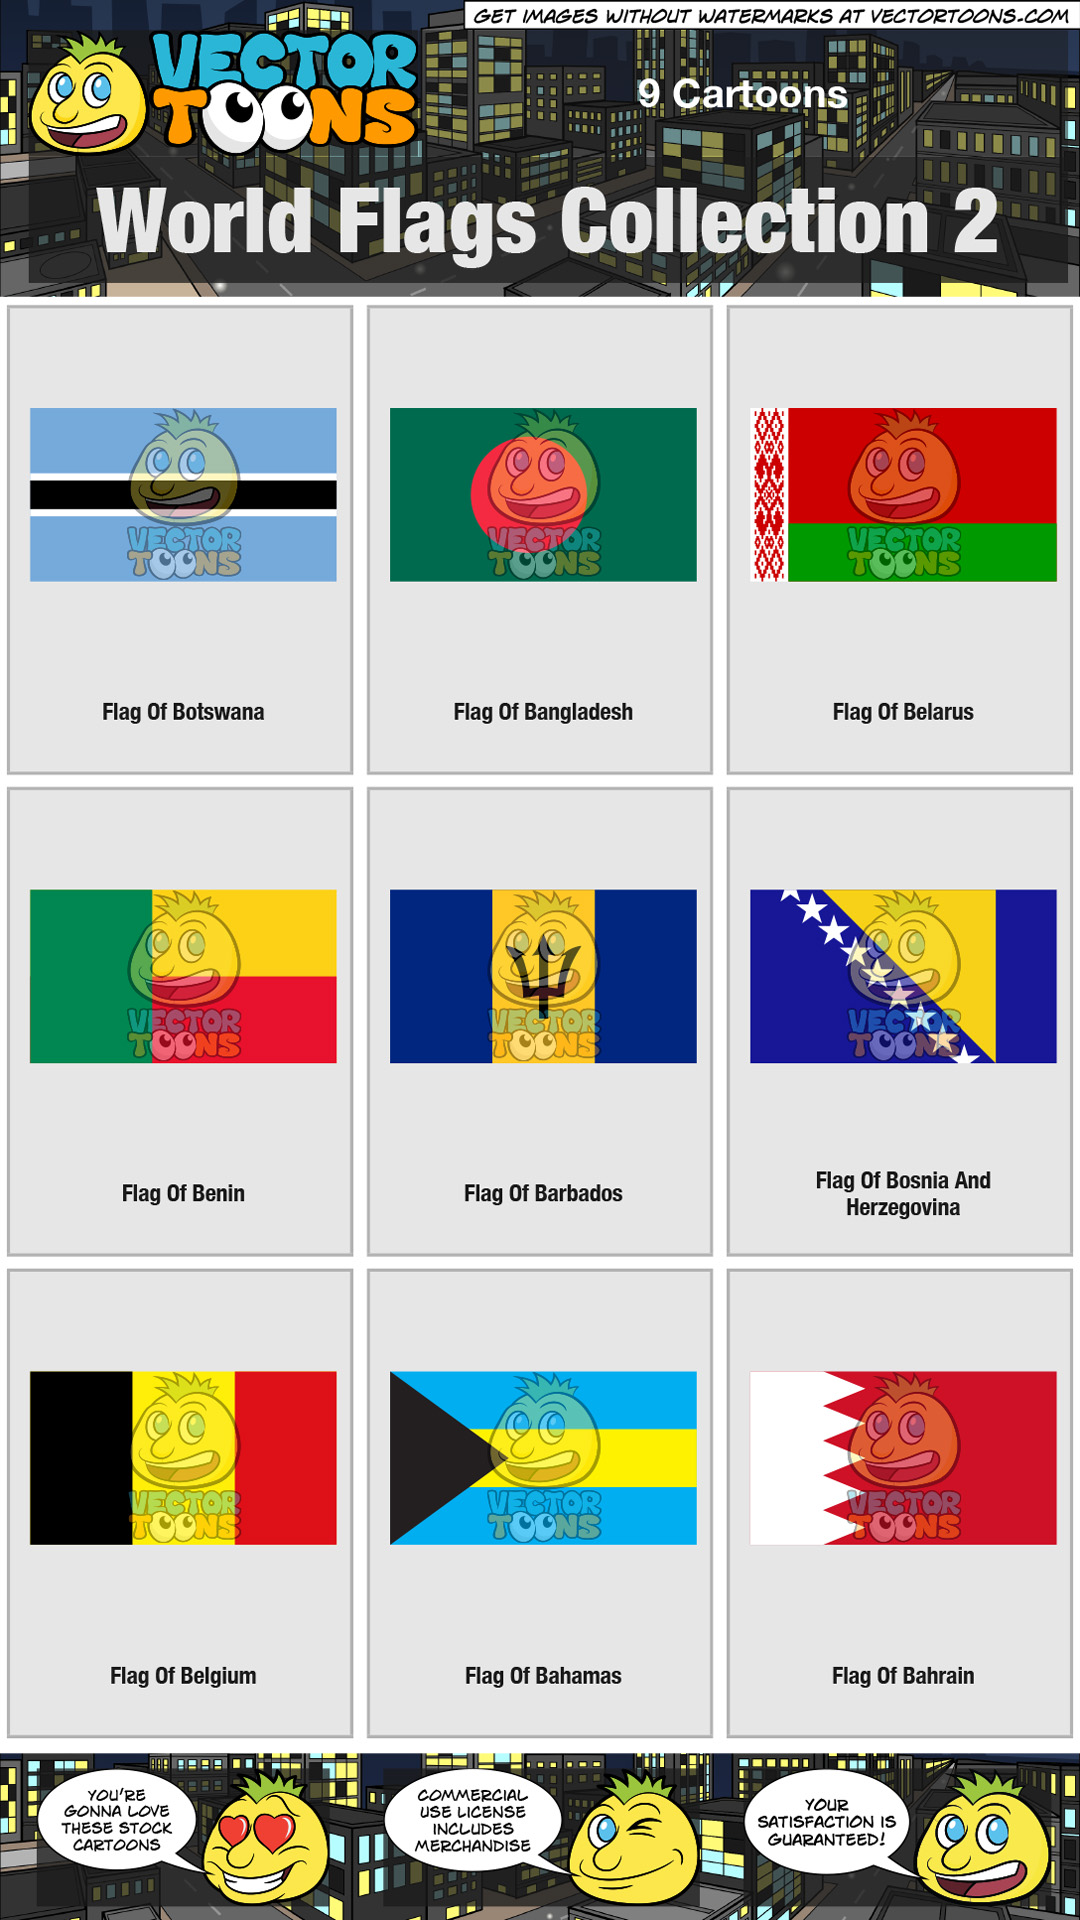 World Flags Collection 2 thumbnail